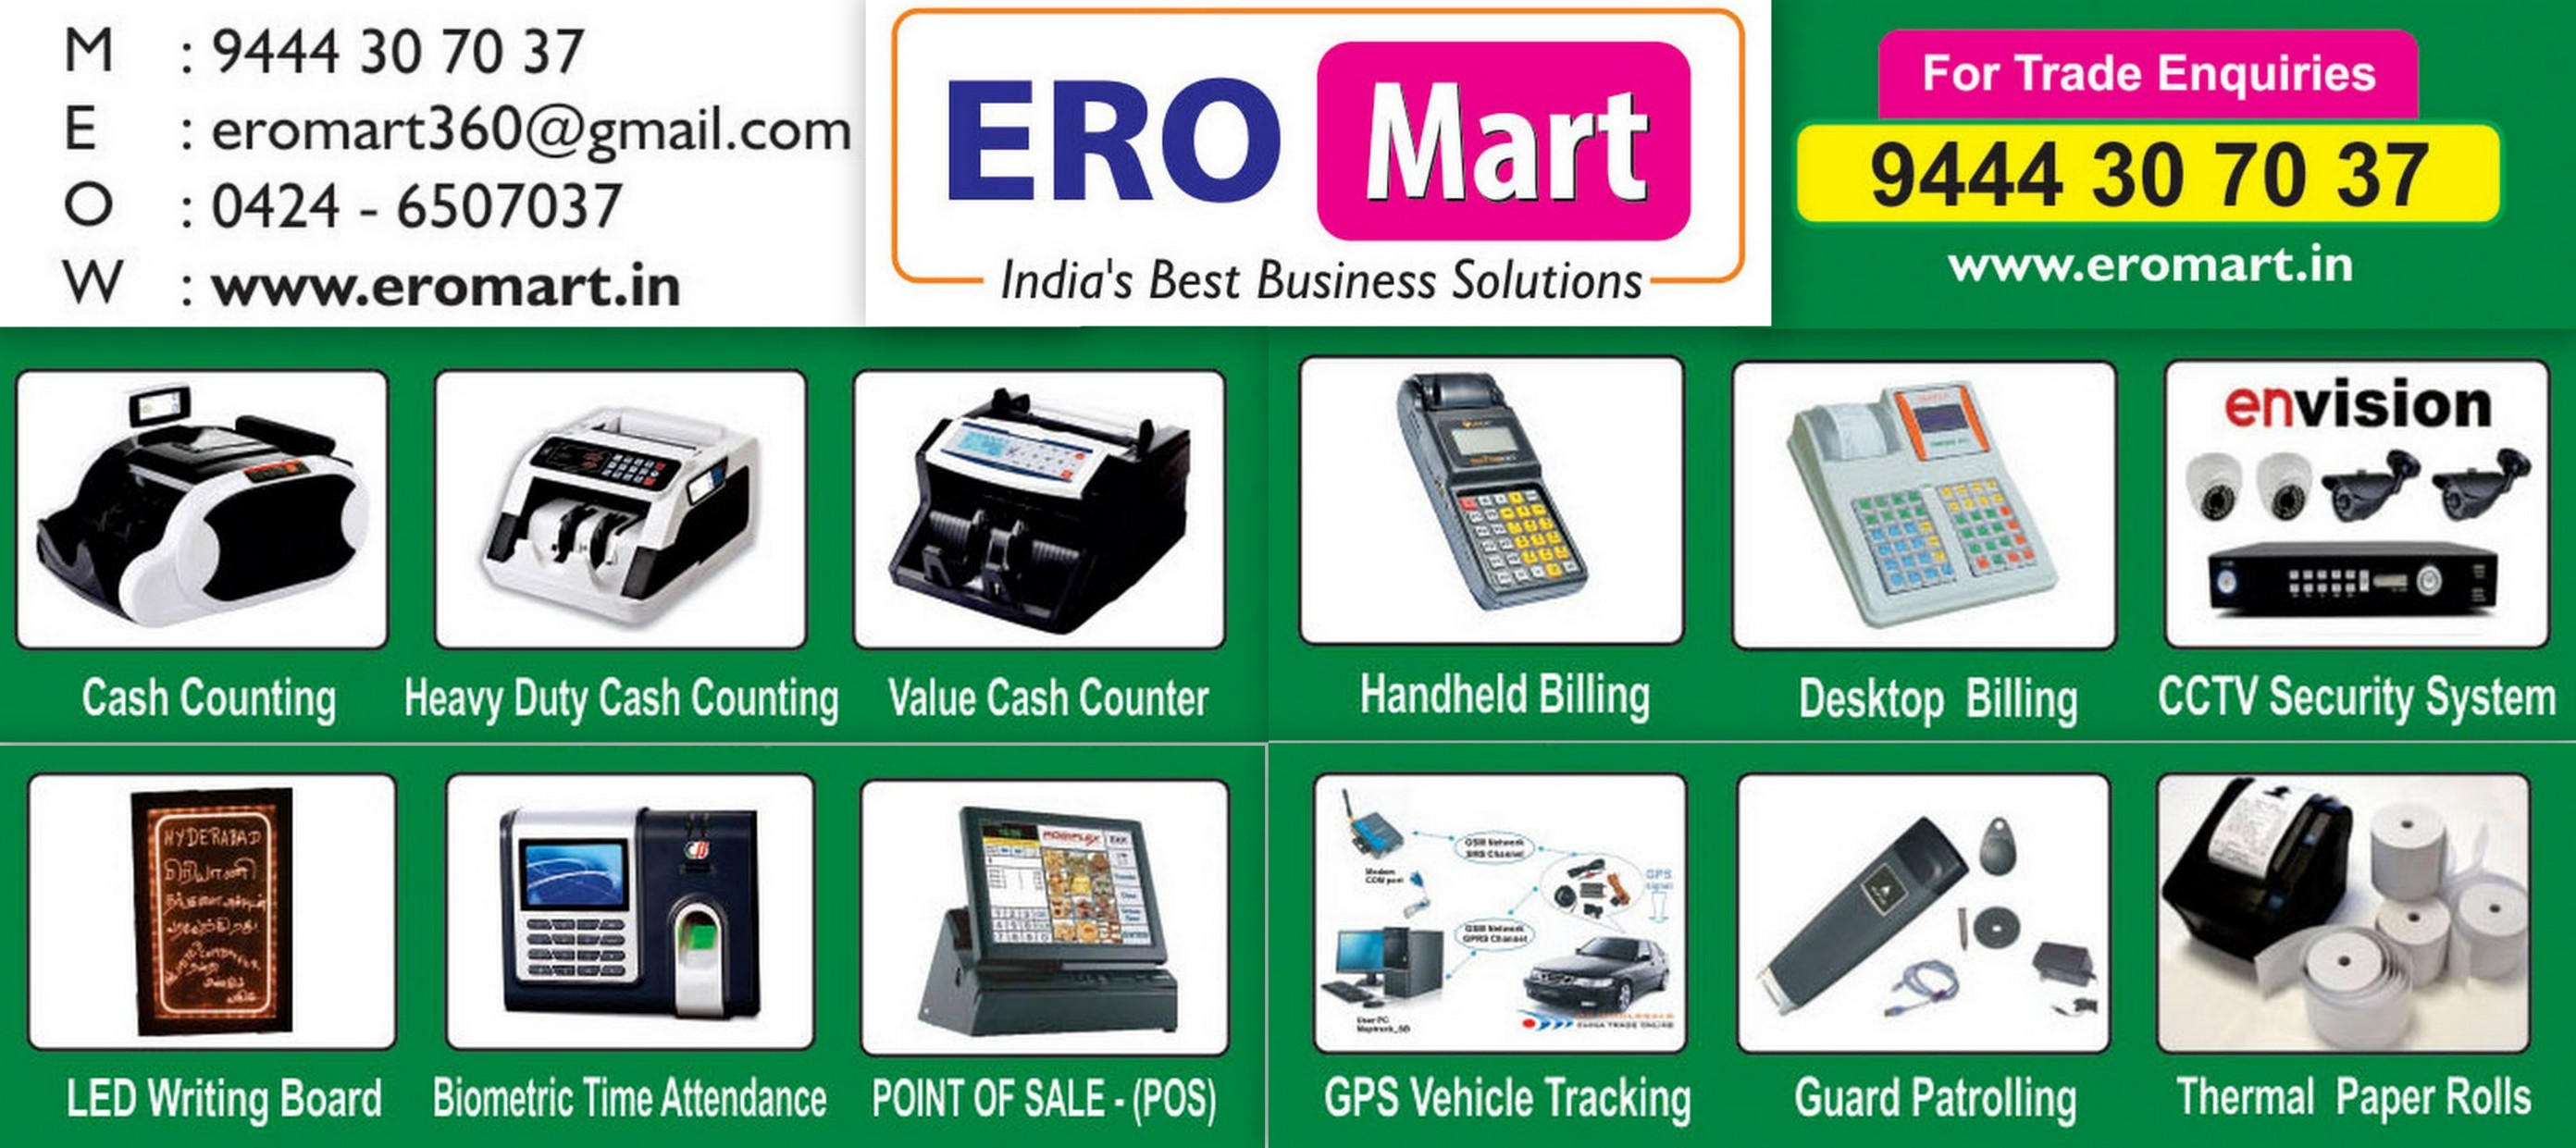 ERO MART banner - One Stop Shop for Cash Counting Machines, Billing Solutions and All types of Office Automation Products